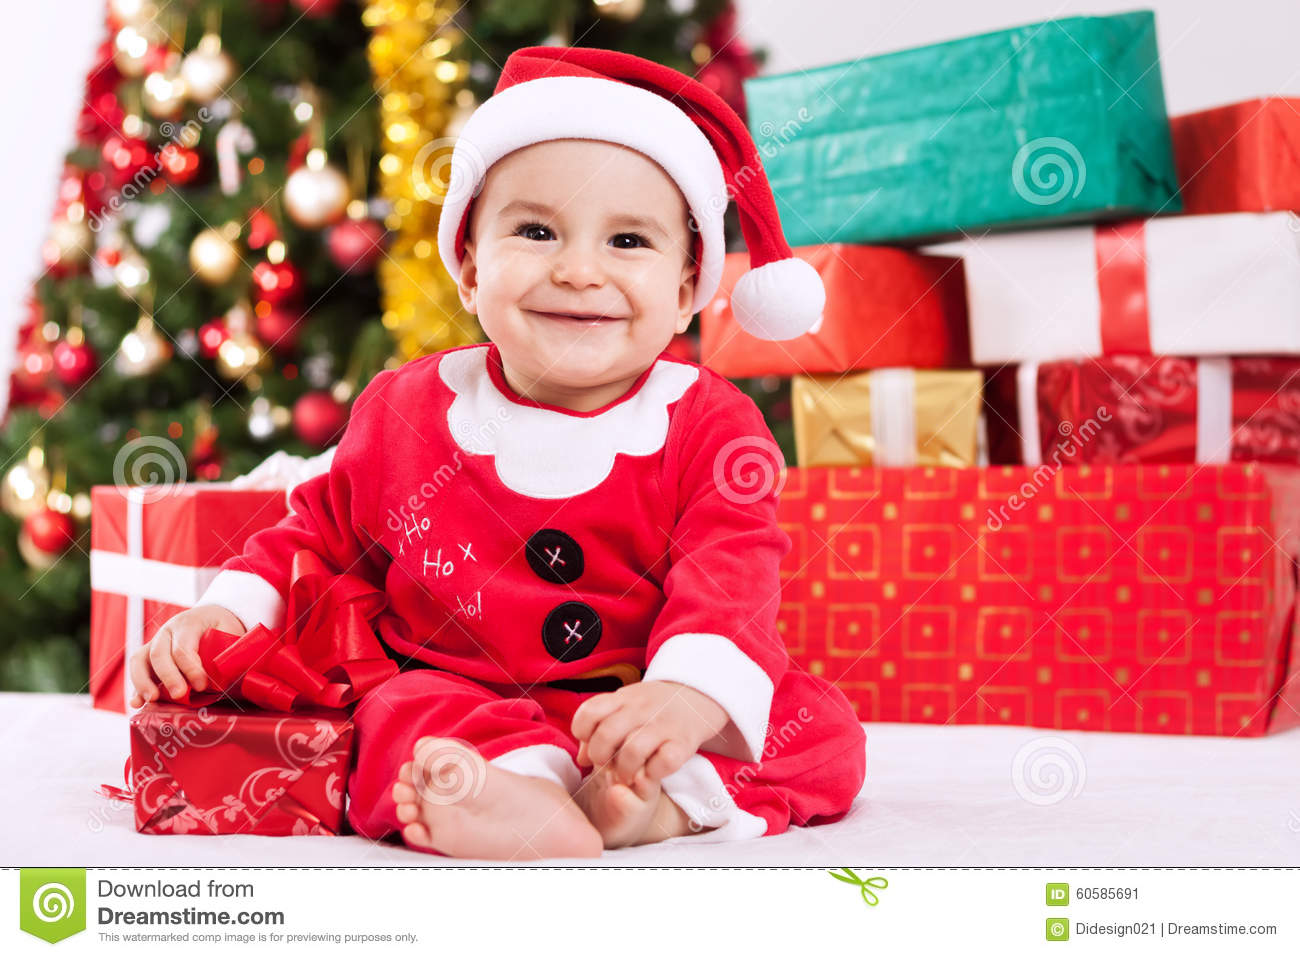 merry christmas with baby little santa claus - Merry Christmas Baby